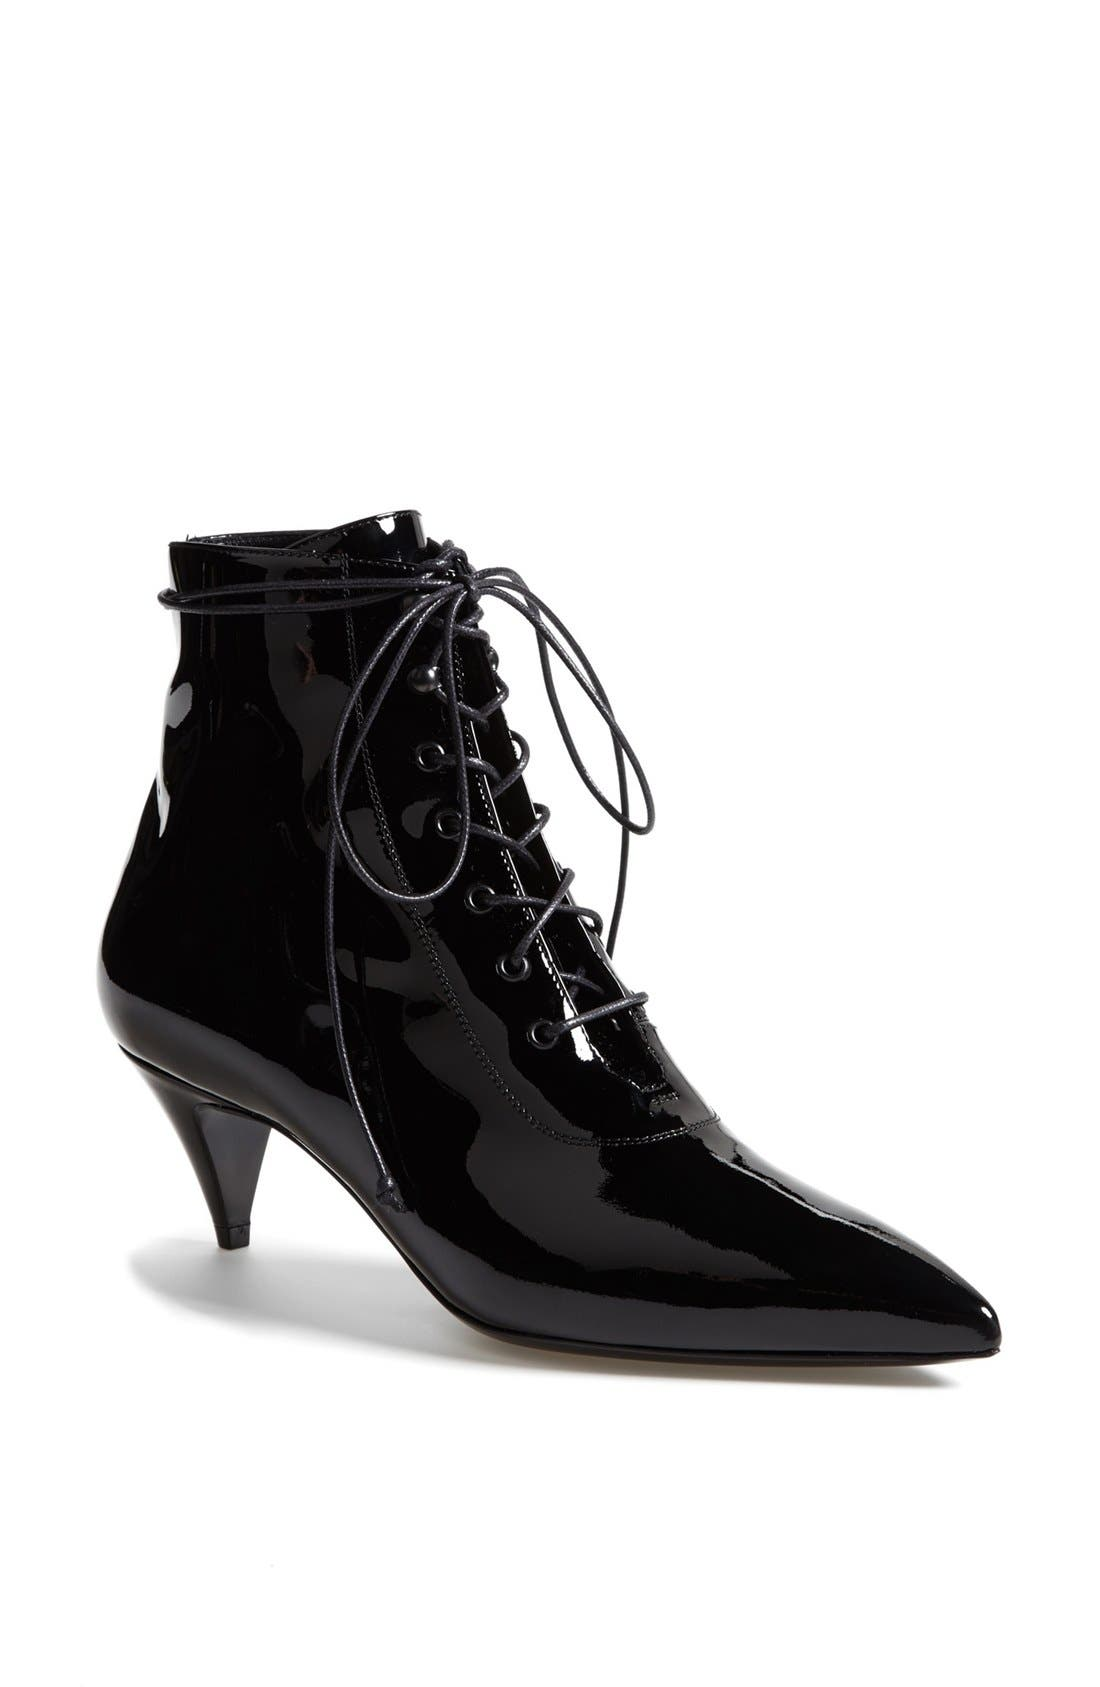 Main Image - Saint Laurent 'Cat' Bootie